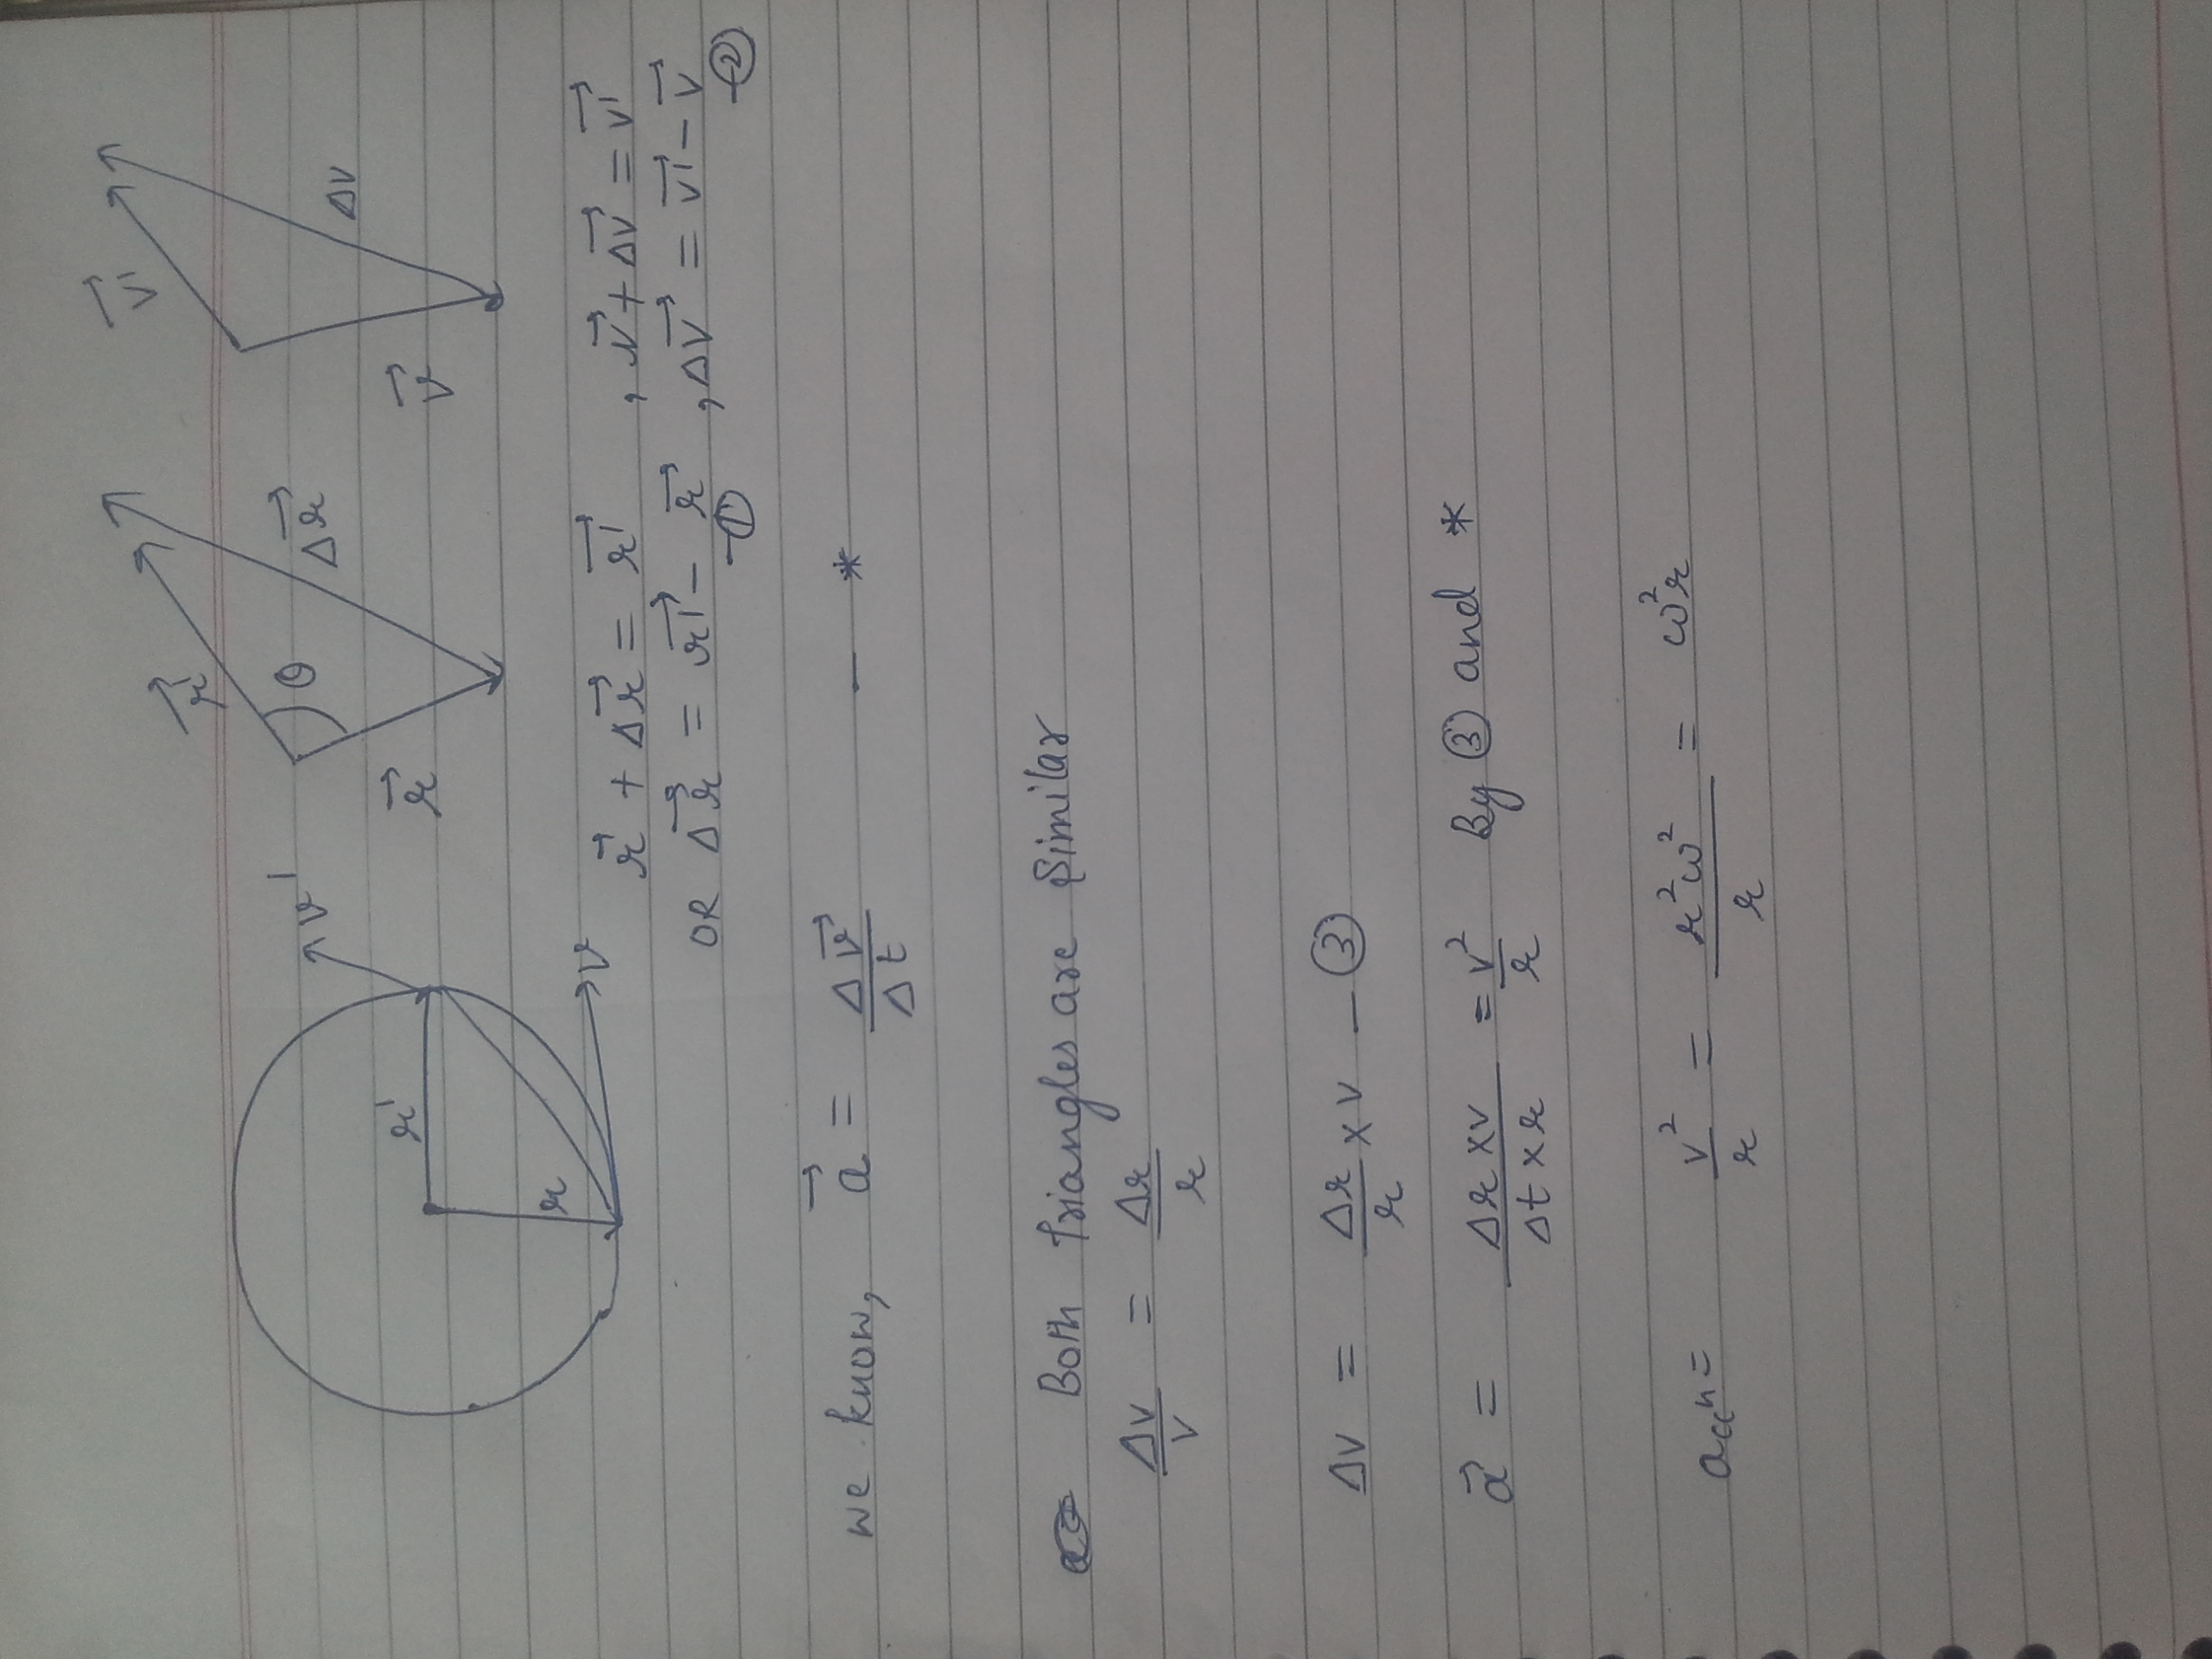 Derive An Expression For The Centripetal Acceleration For Uniform Circular Motion